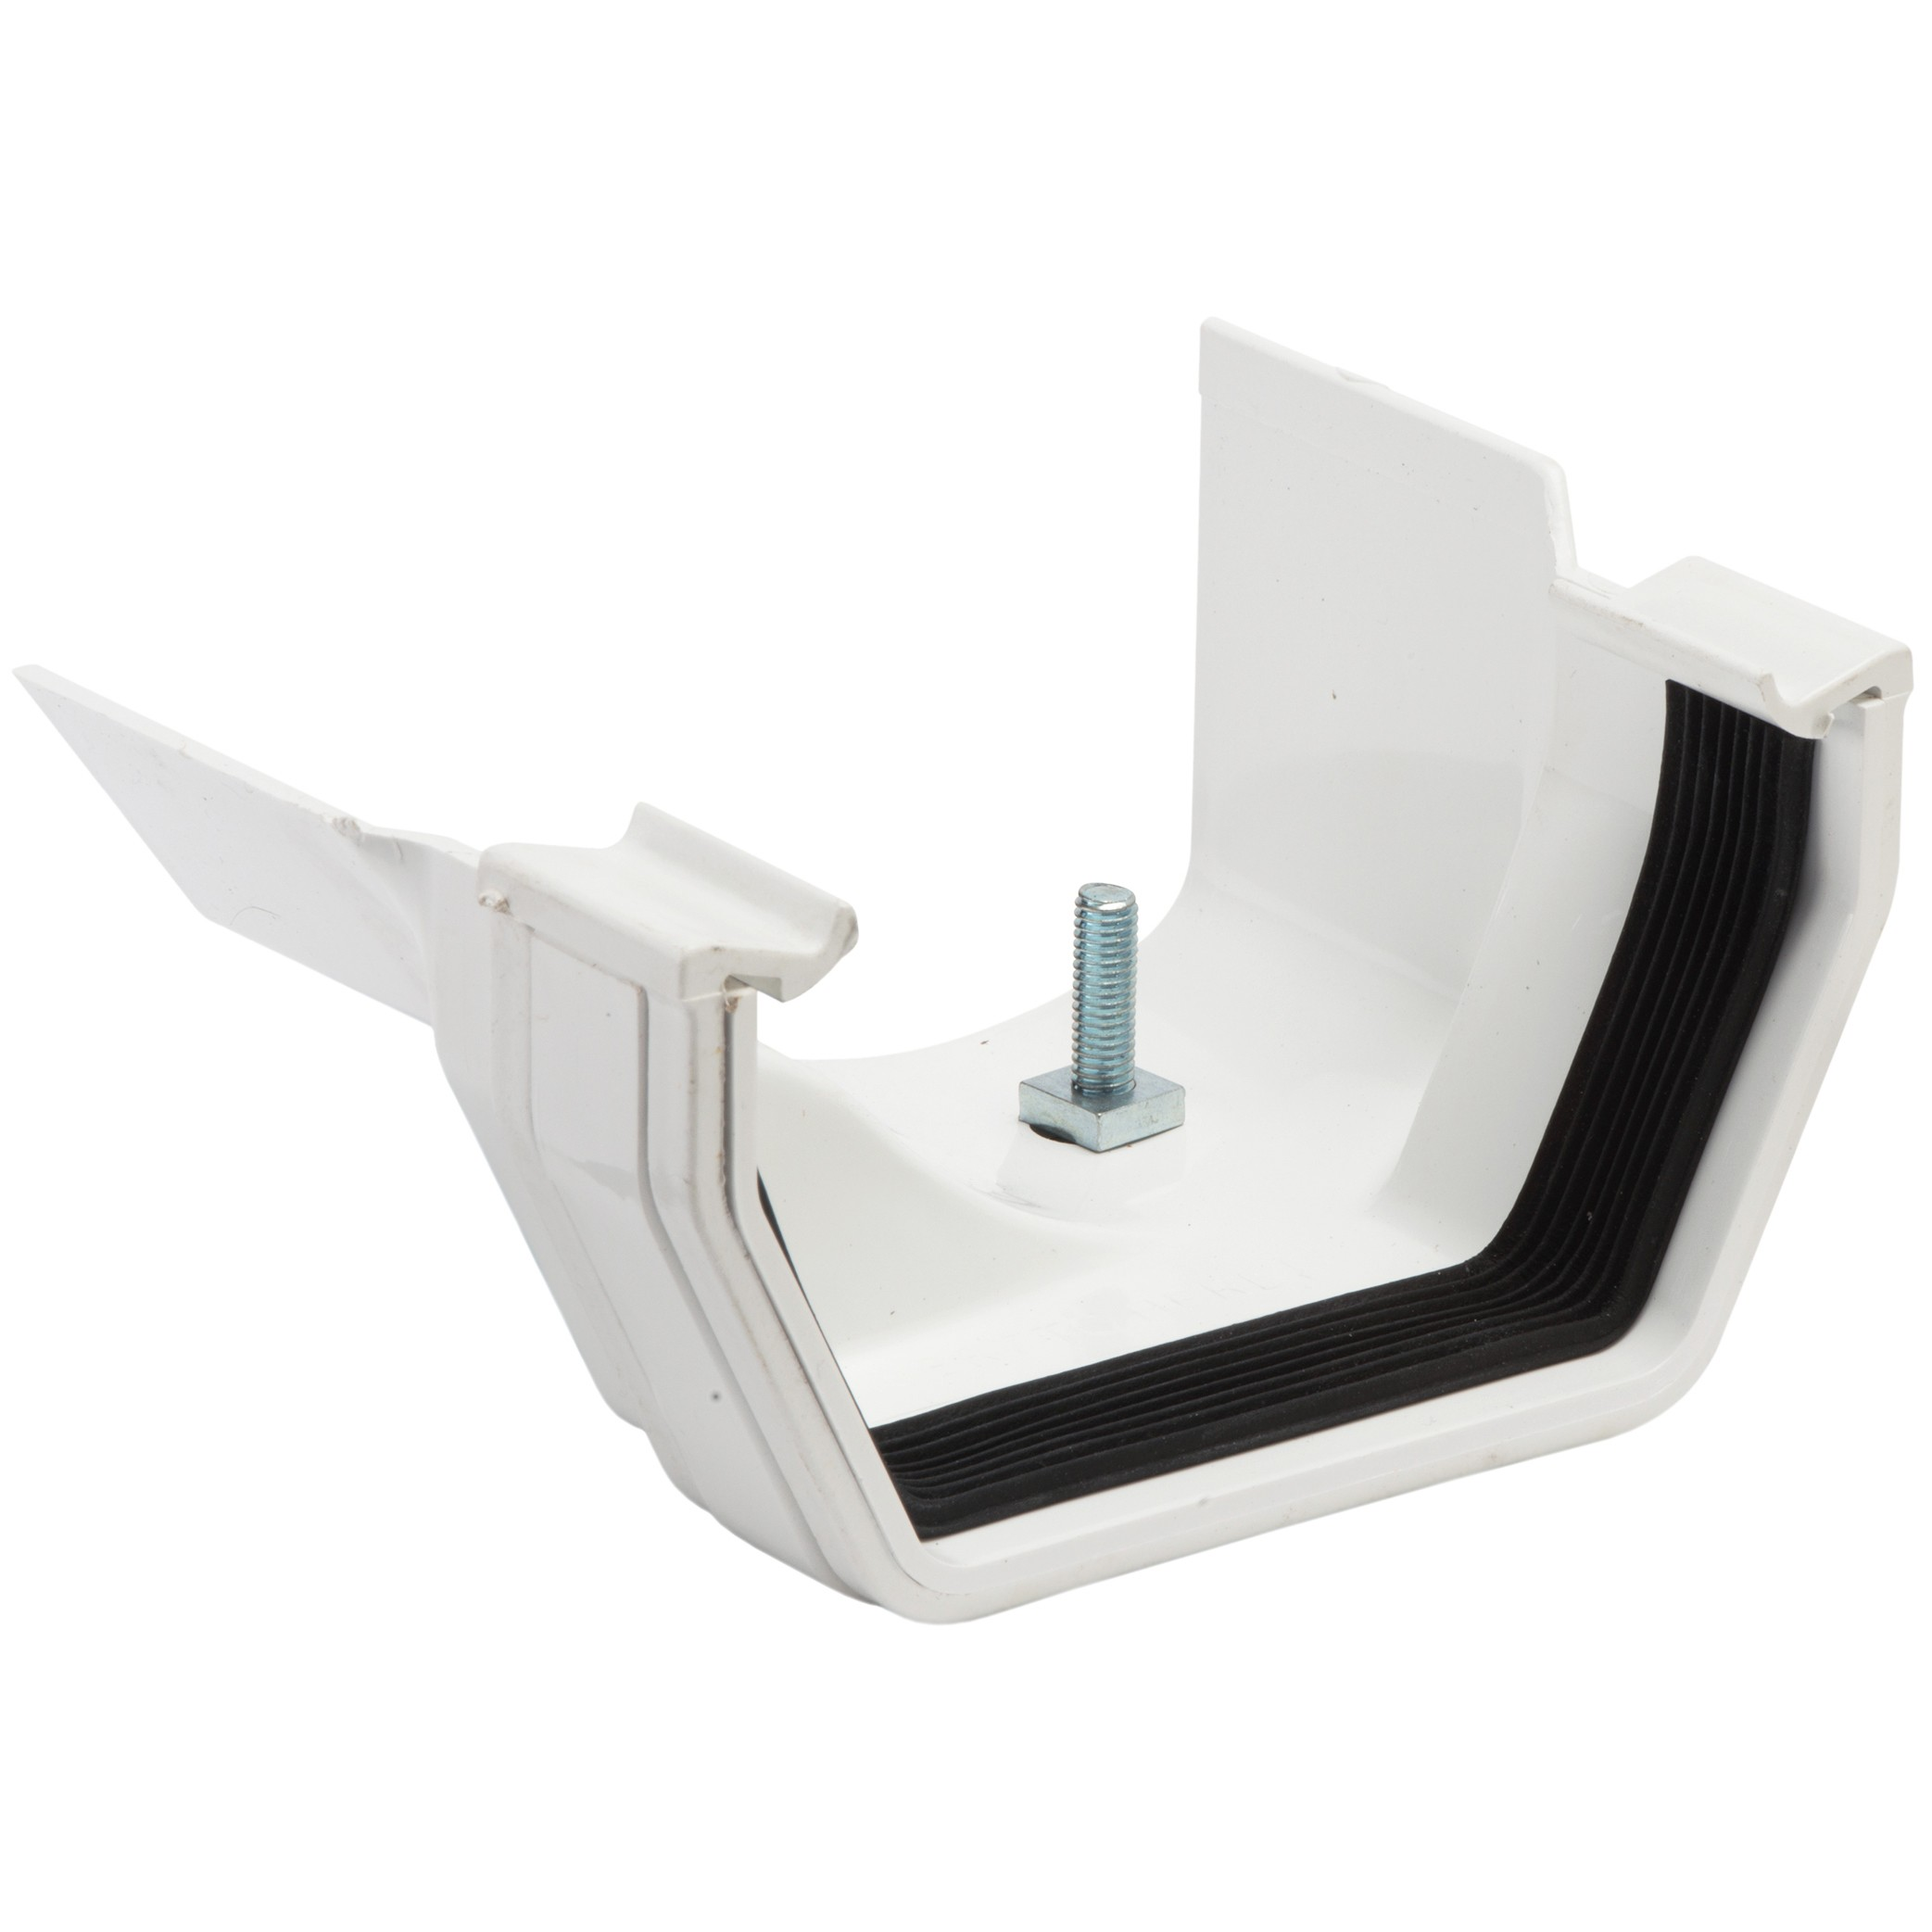 Polypipe 112mm Square to 130mm Metal Ogee Gutter Adaptor (Left Hand) - White